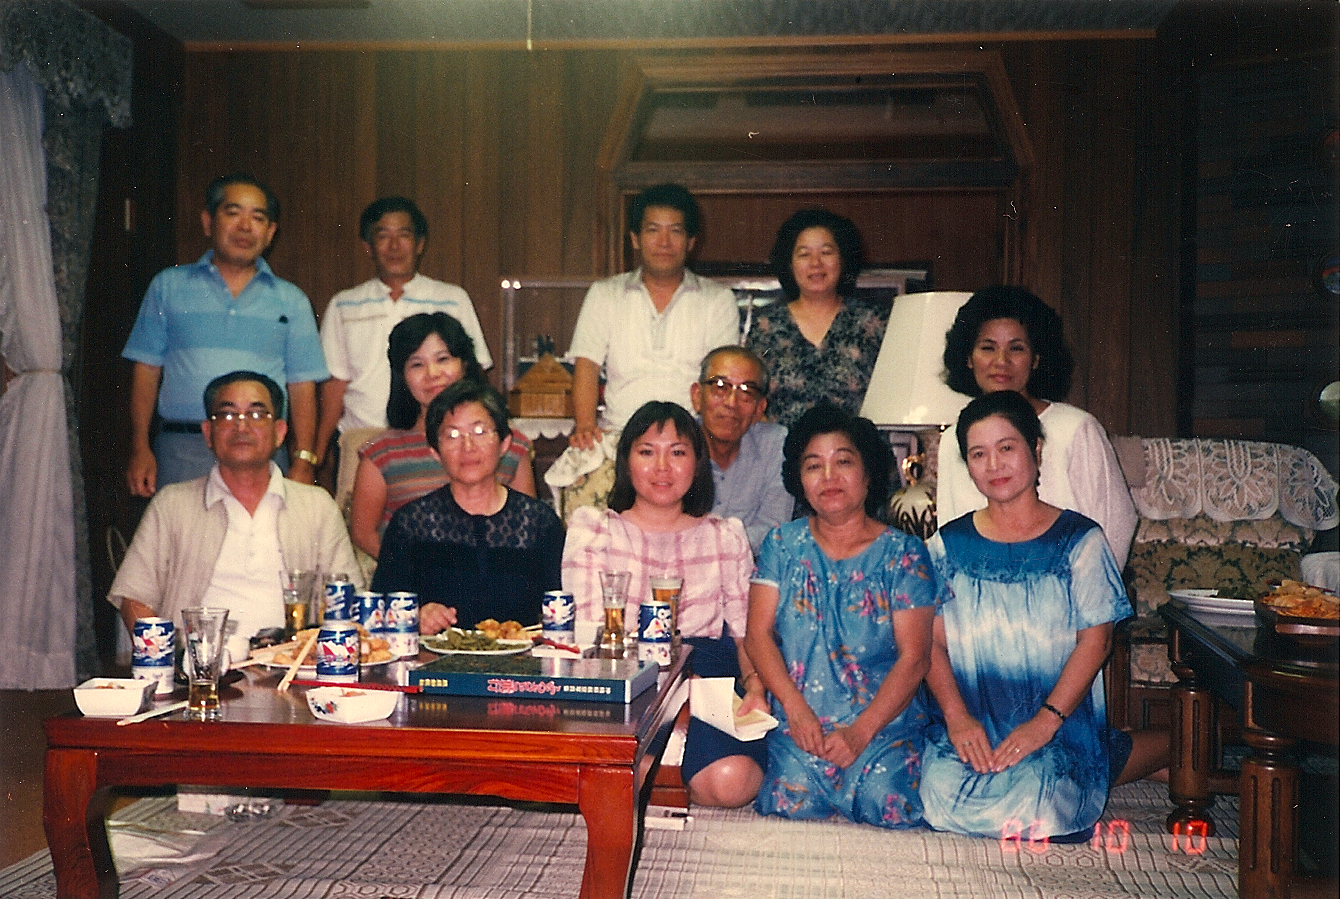 Photo of the Arata aunties and uncles gathered to welcome me to Okinawa in 1986.